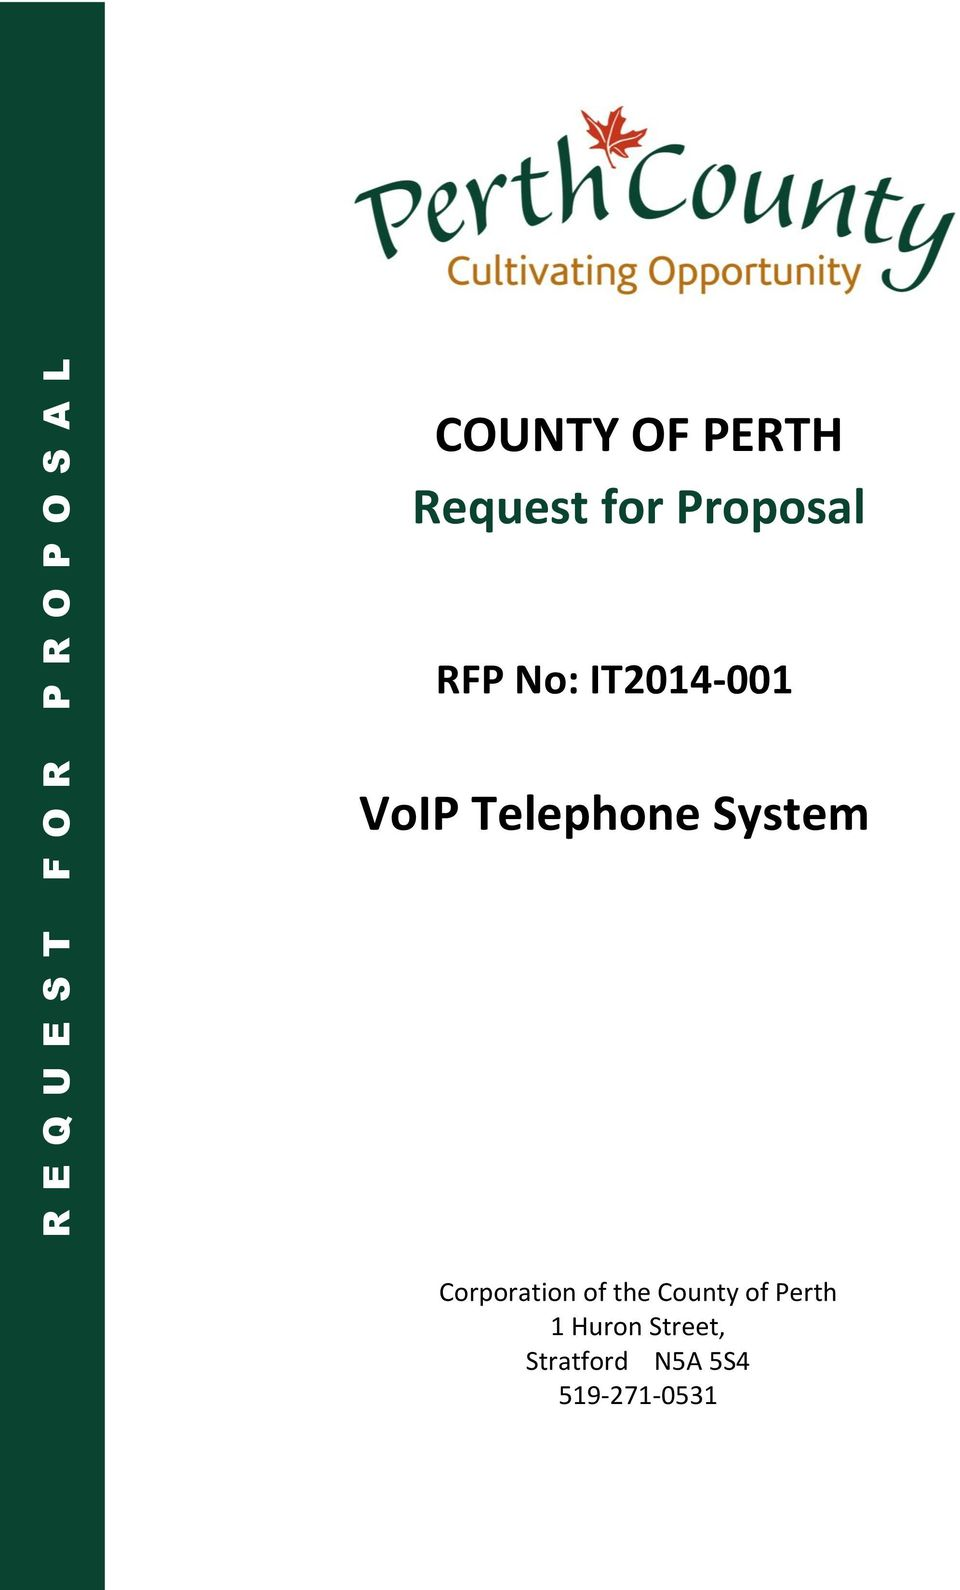 VoIP Telephone System Corporation of the County